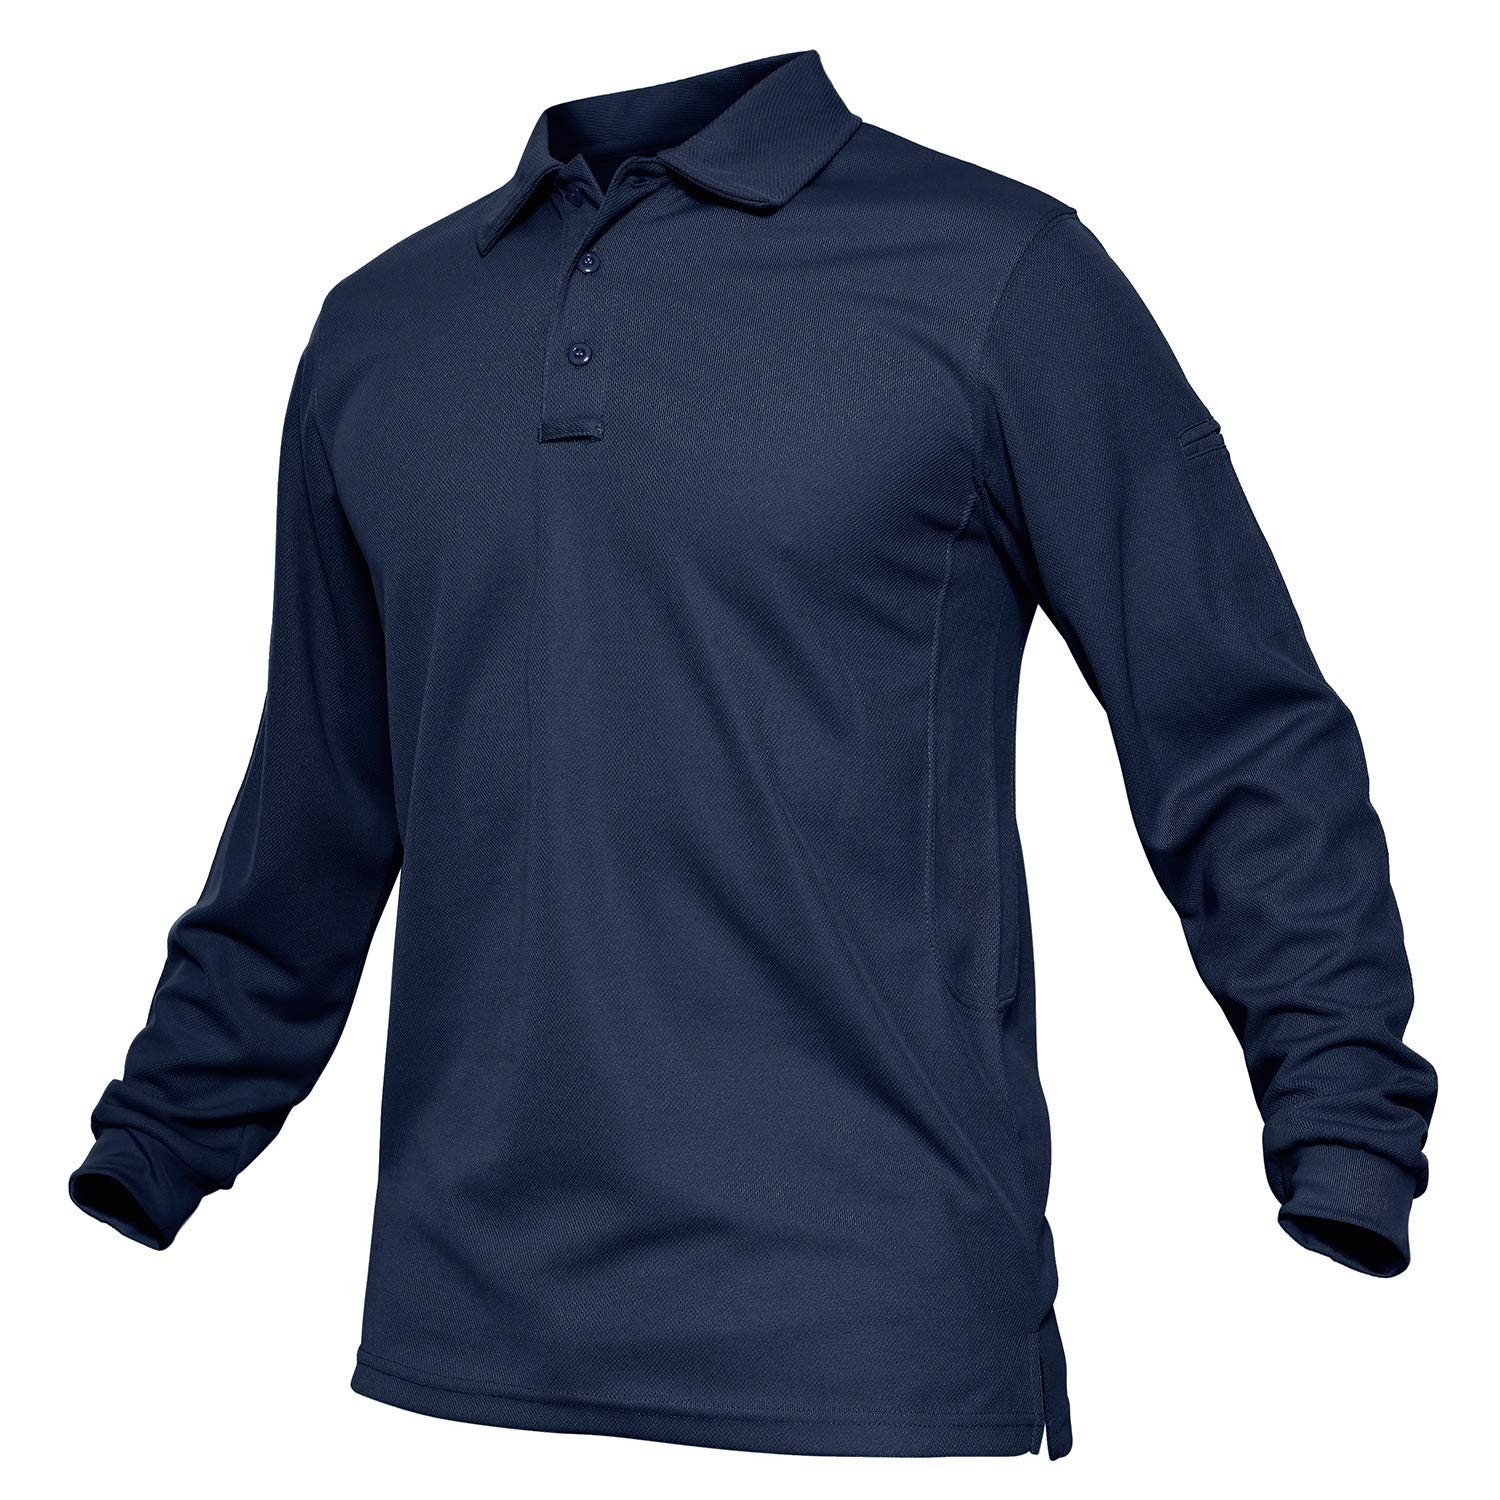 TACVASEN Men's Performance Battle Top Tactical Polo Combat Long Sleeve Navy,US L by TACVASEN